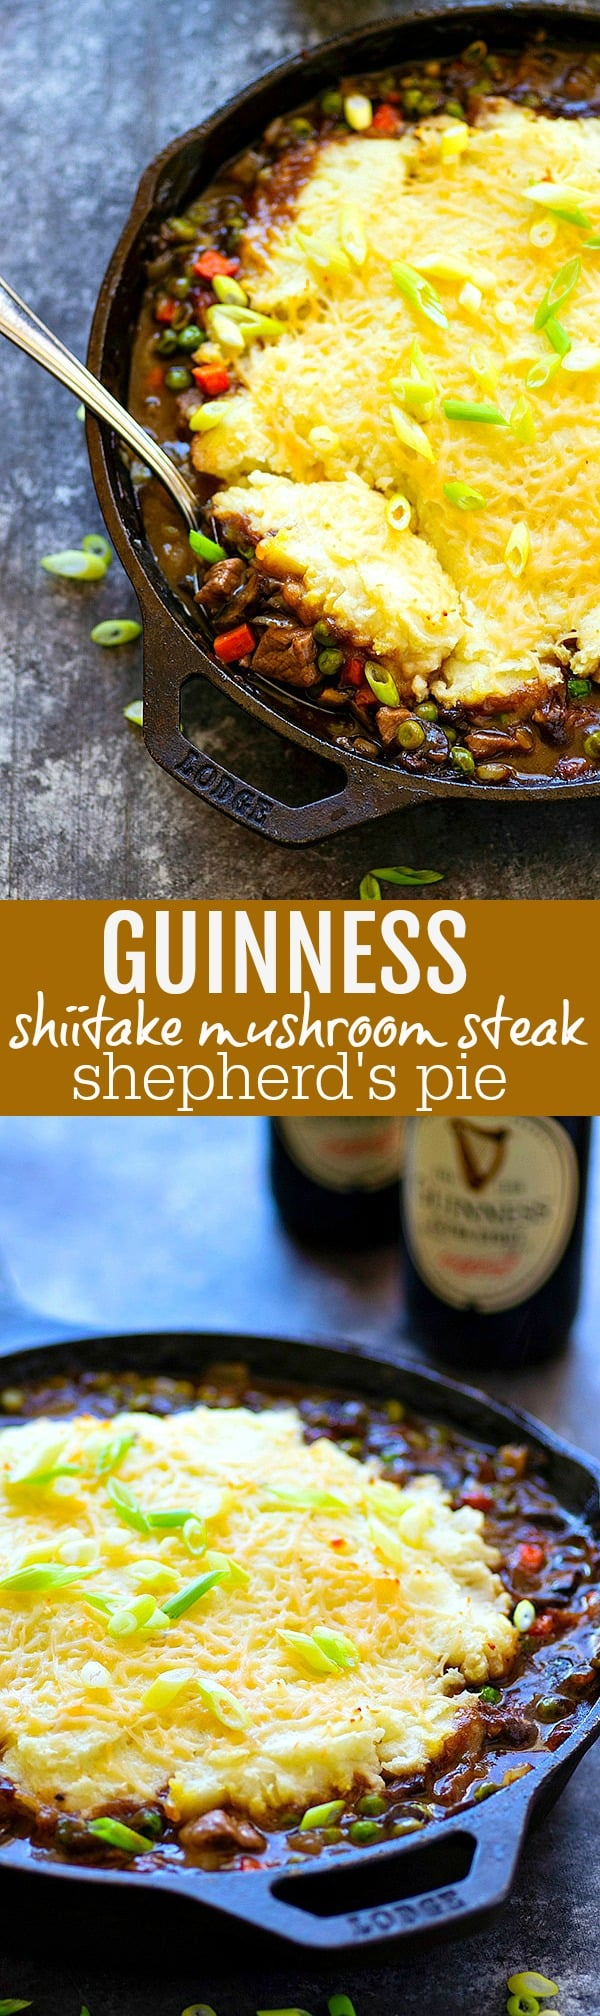 Guinness Shiitake Mushroom Steak Shepherd's Pie - Dark guinness beer, tender shiitake mushrooms, and juicy steak transform a classic comfort food into a SUPER cozy dinner that will find a permanent spot on the dinner menu!